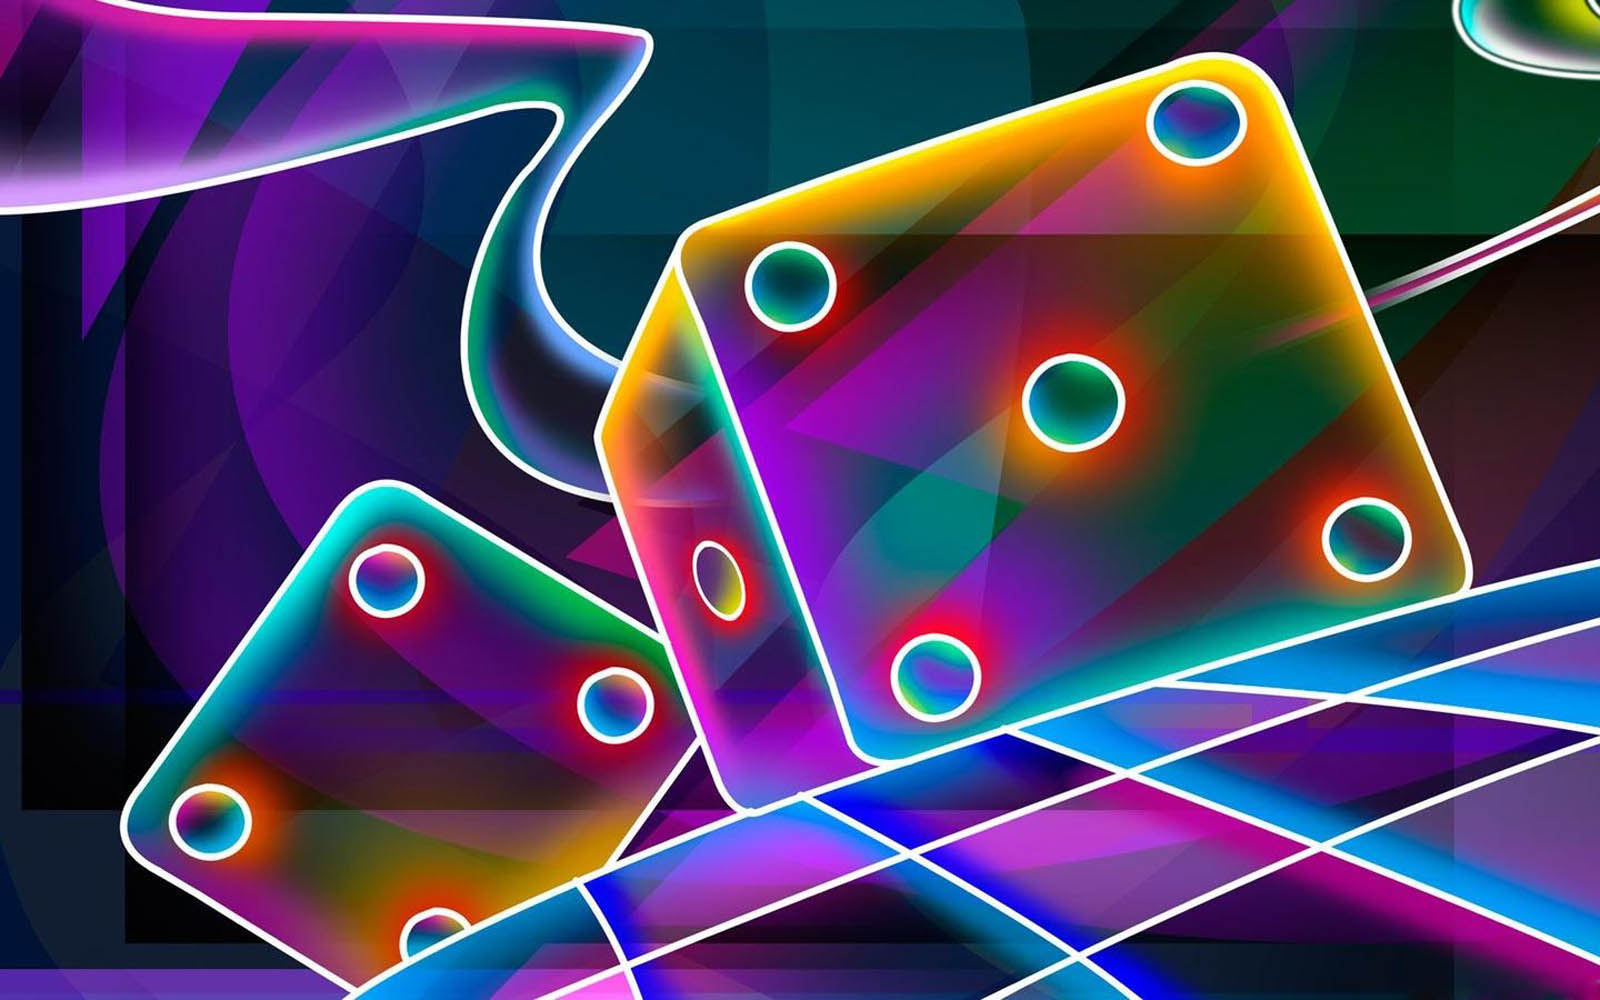 Neon Lights Wallpaper : wallpapers: Neon Art Wallpapers